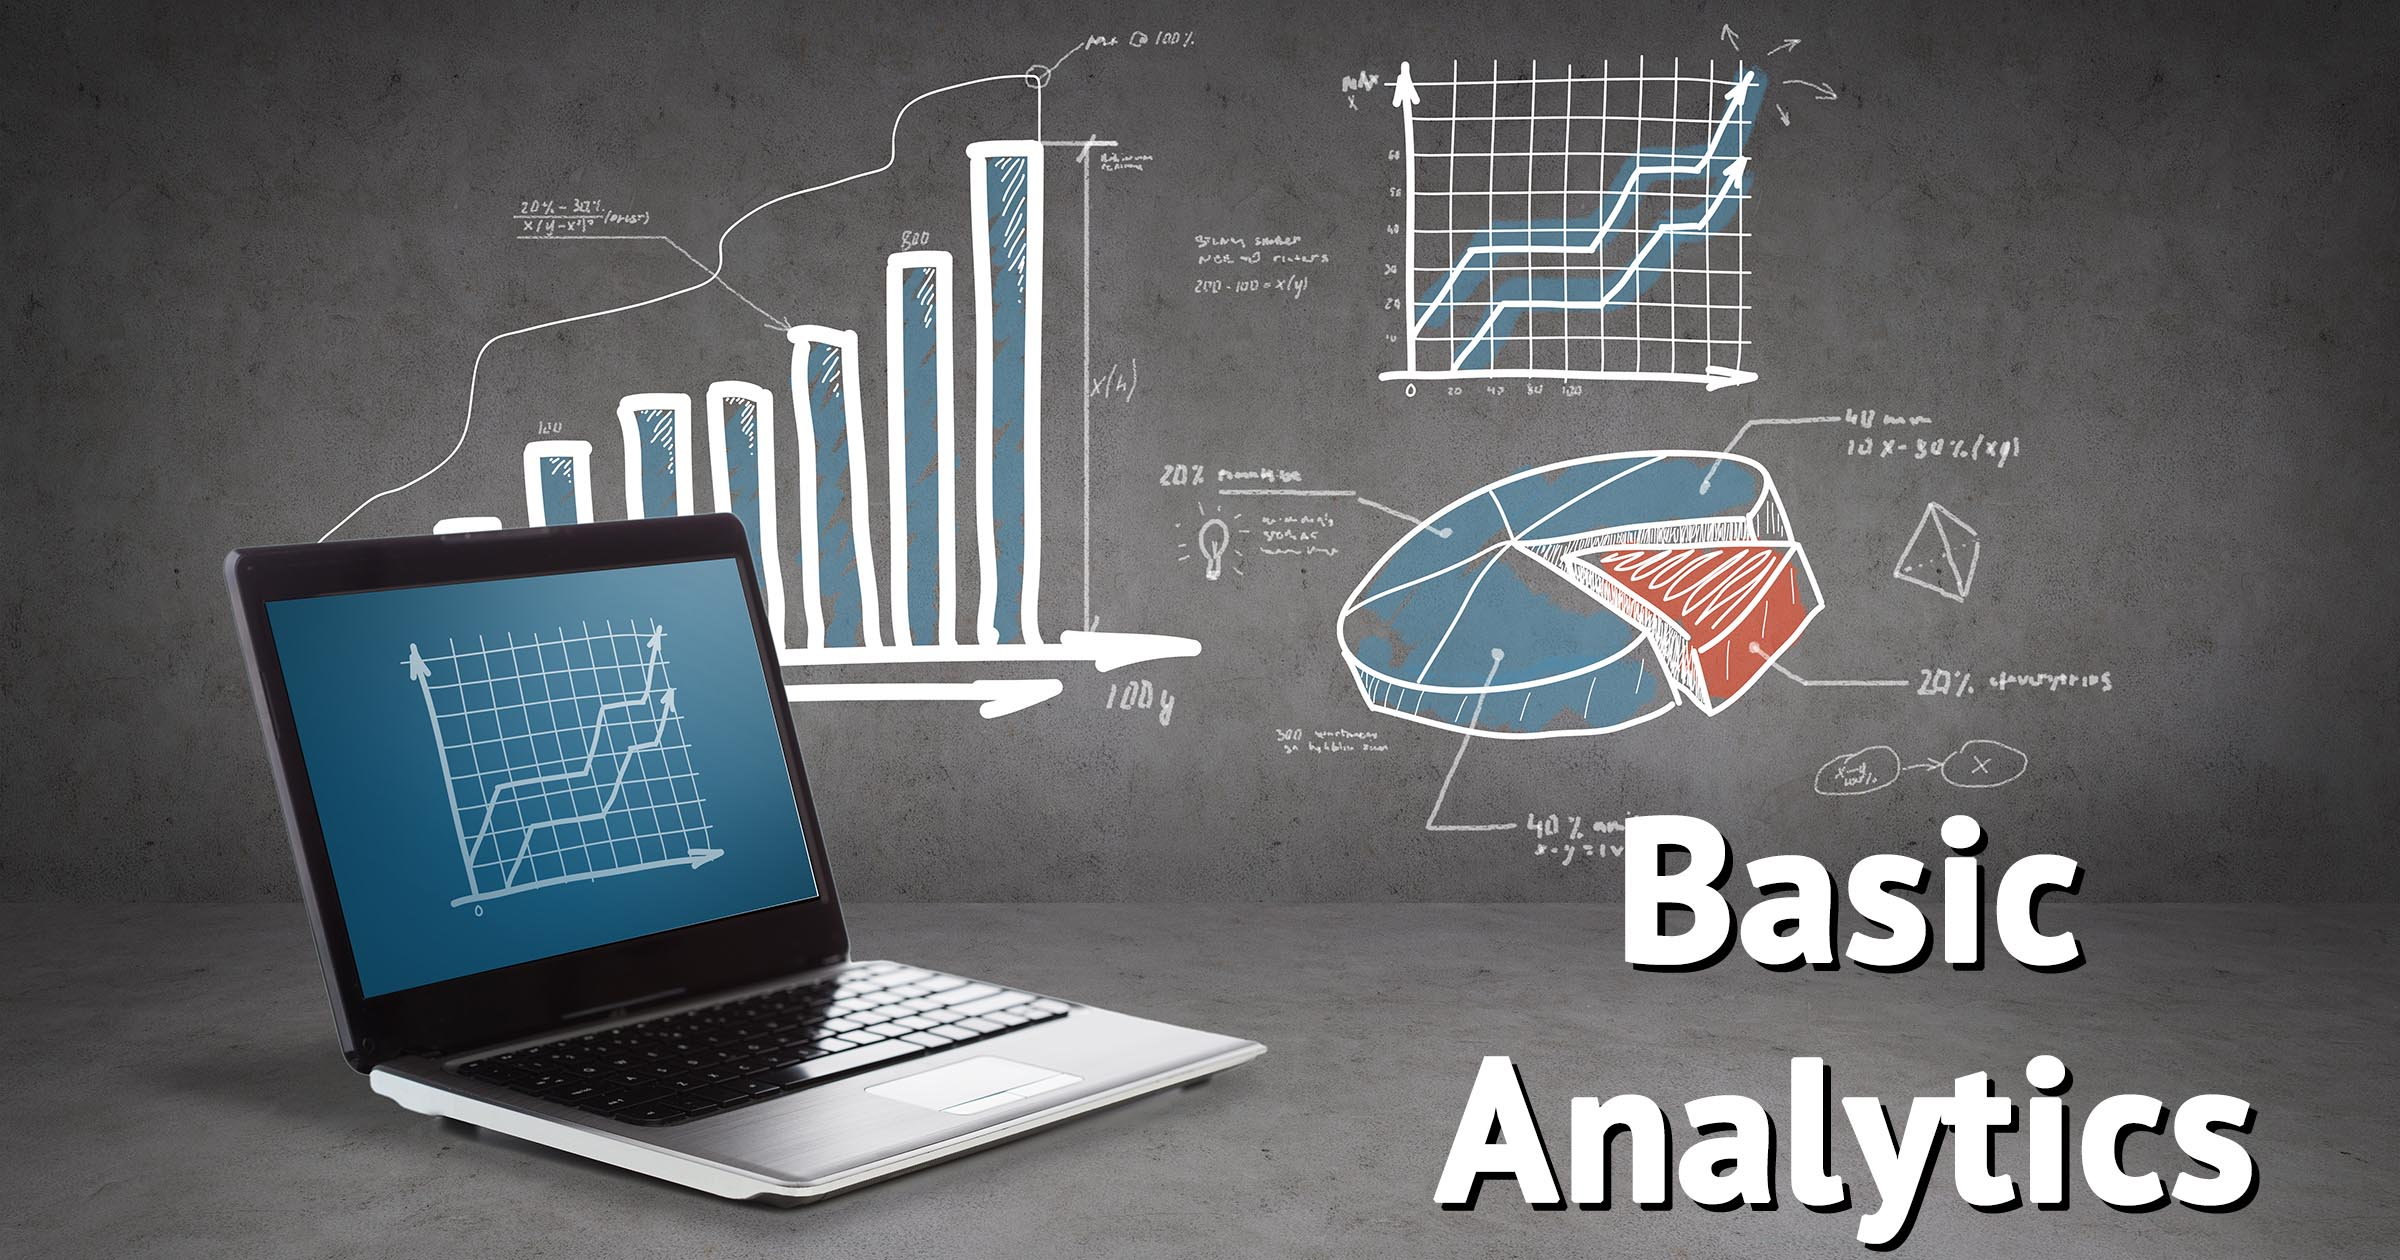 Basic Analytics